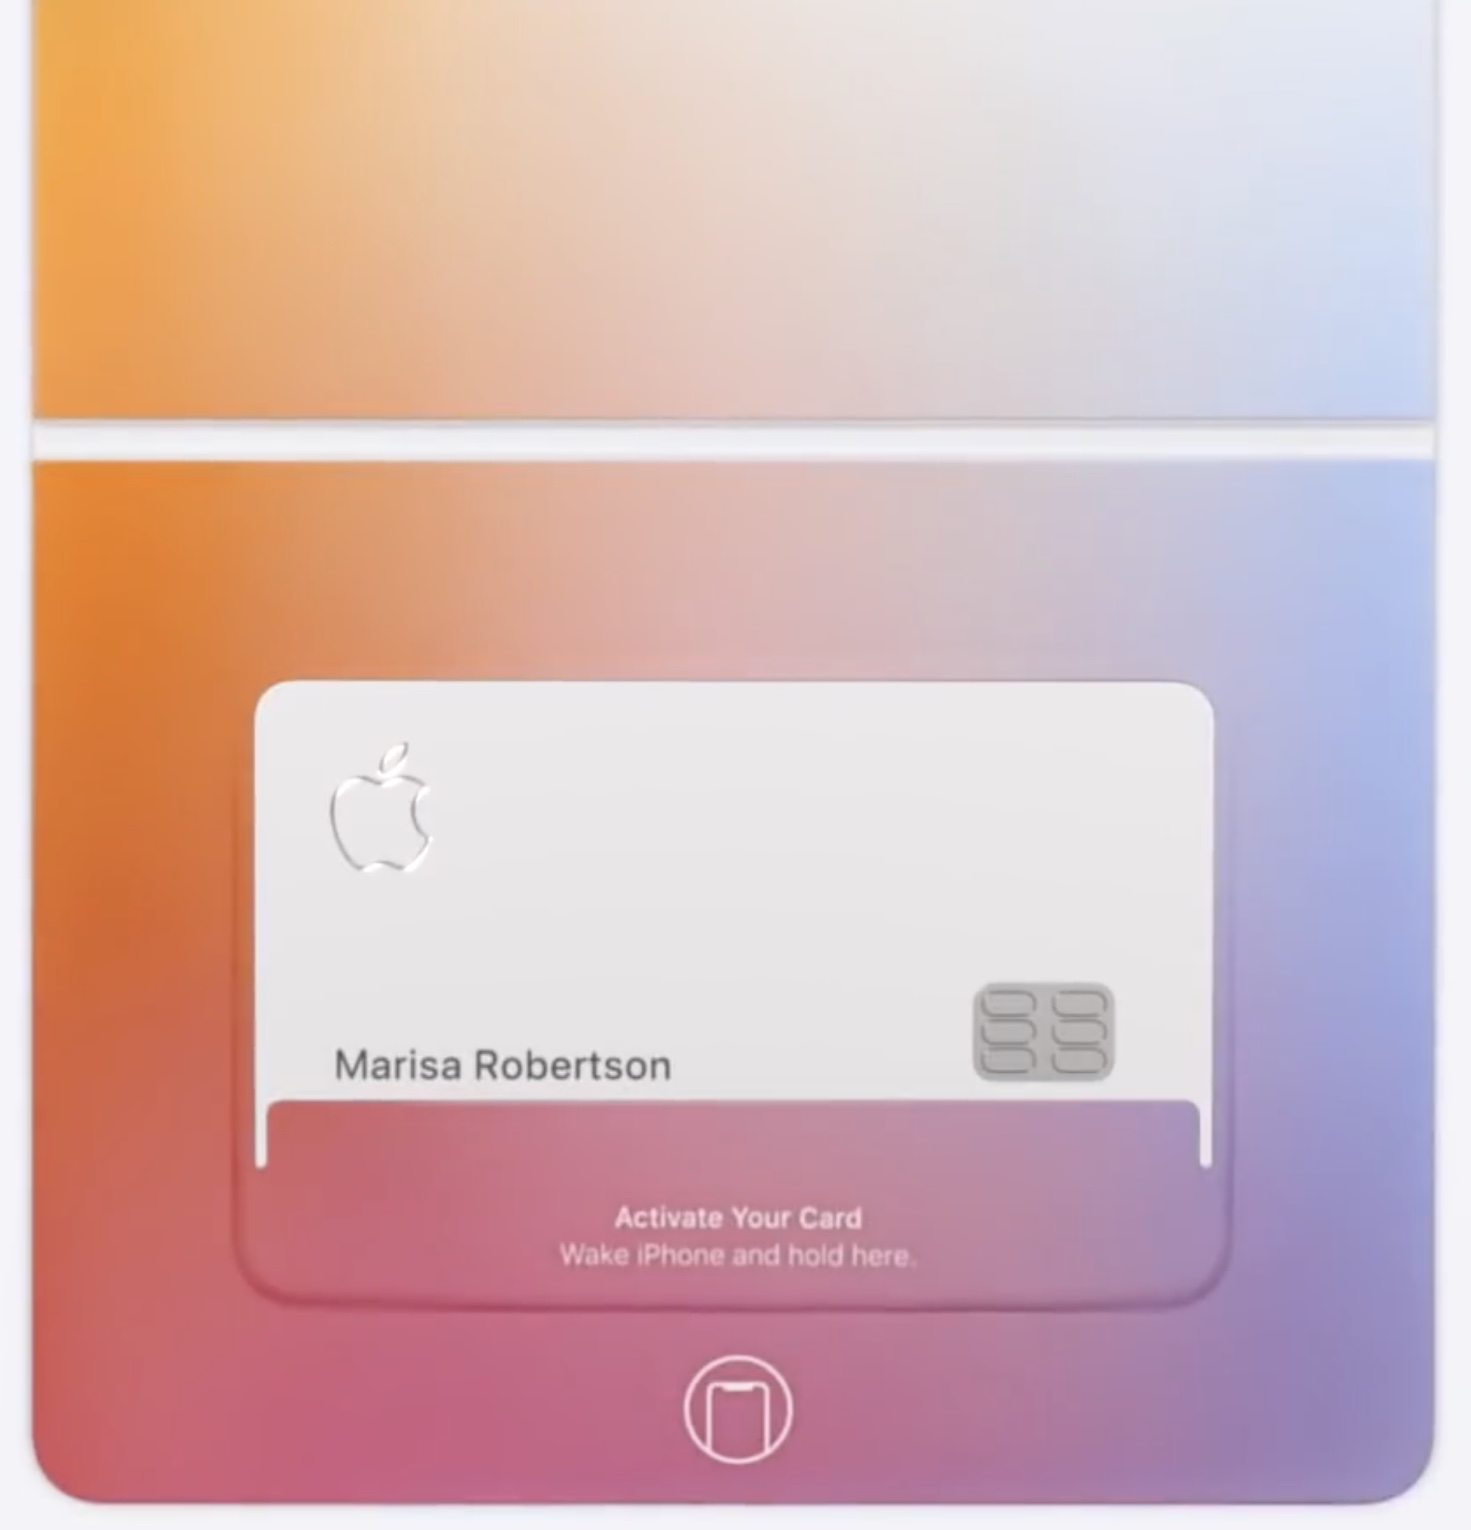 replacement titanium Apple Card